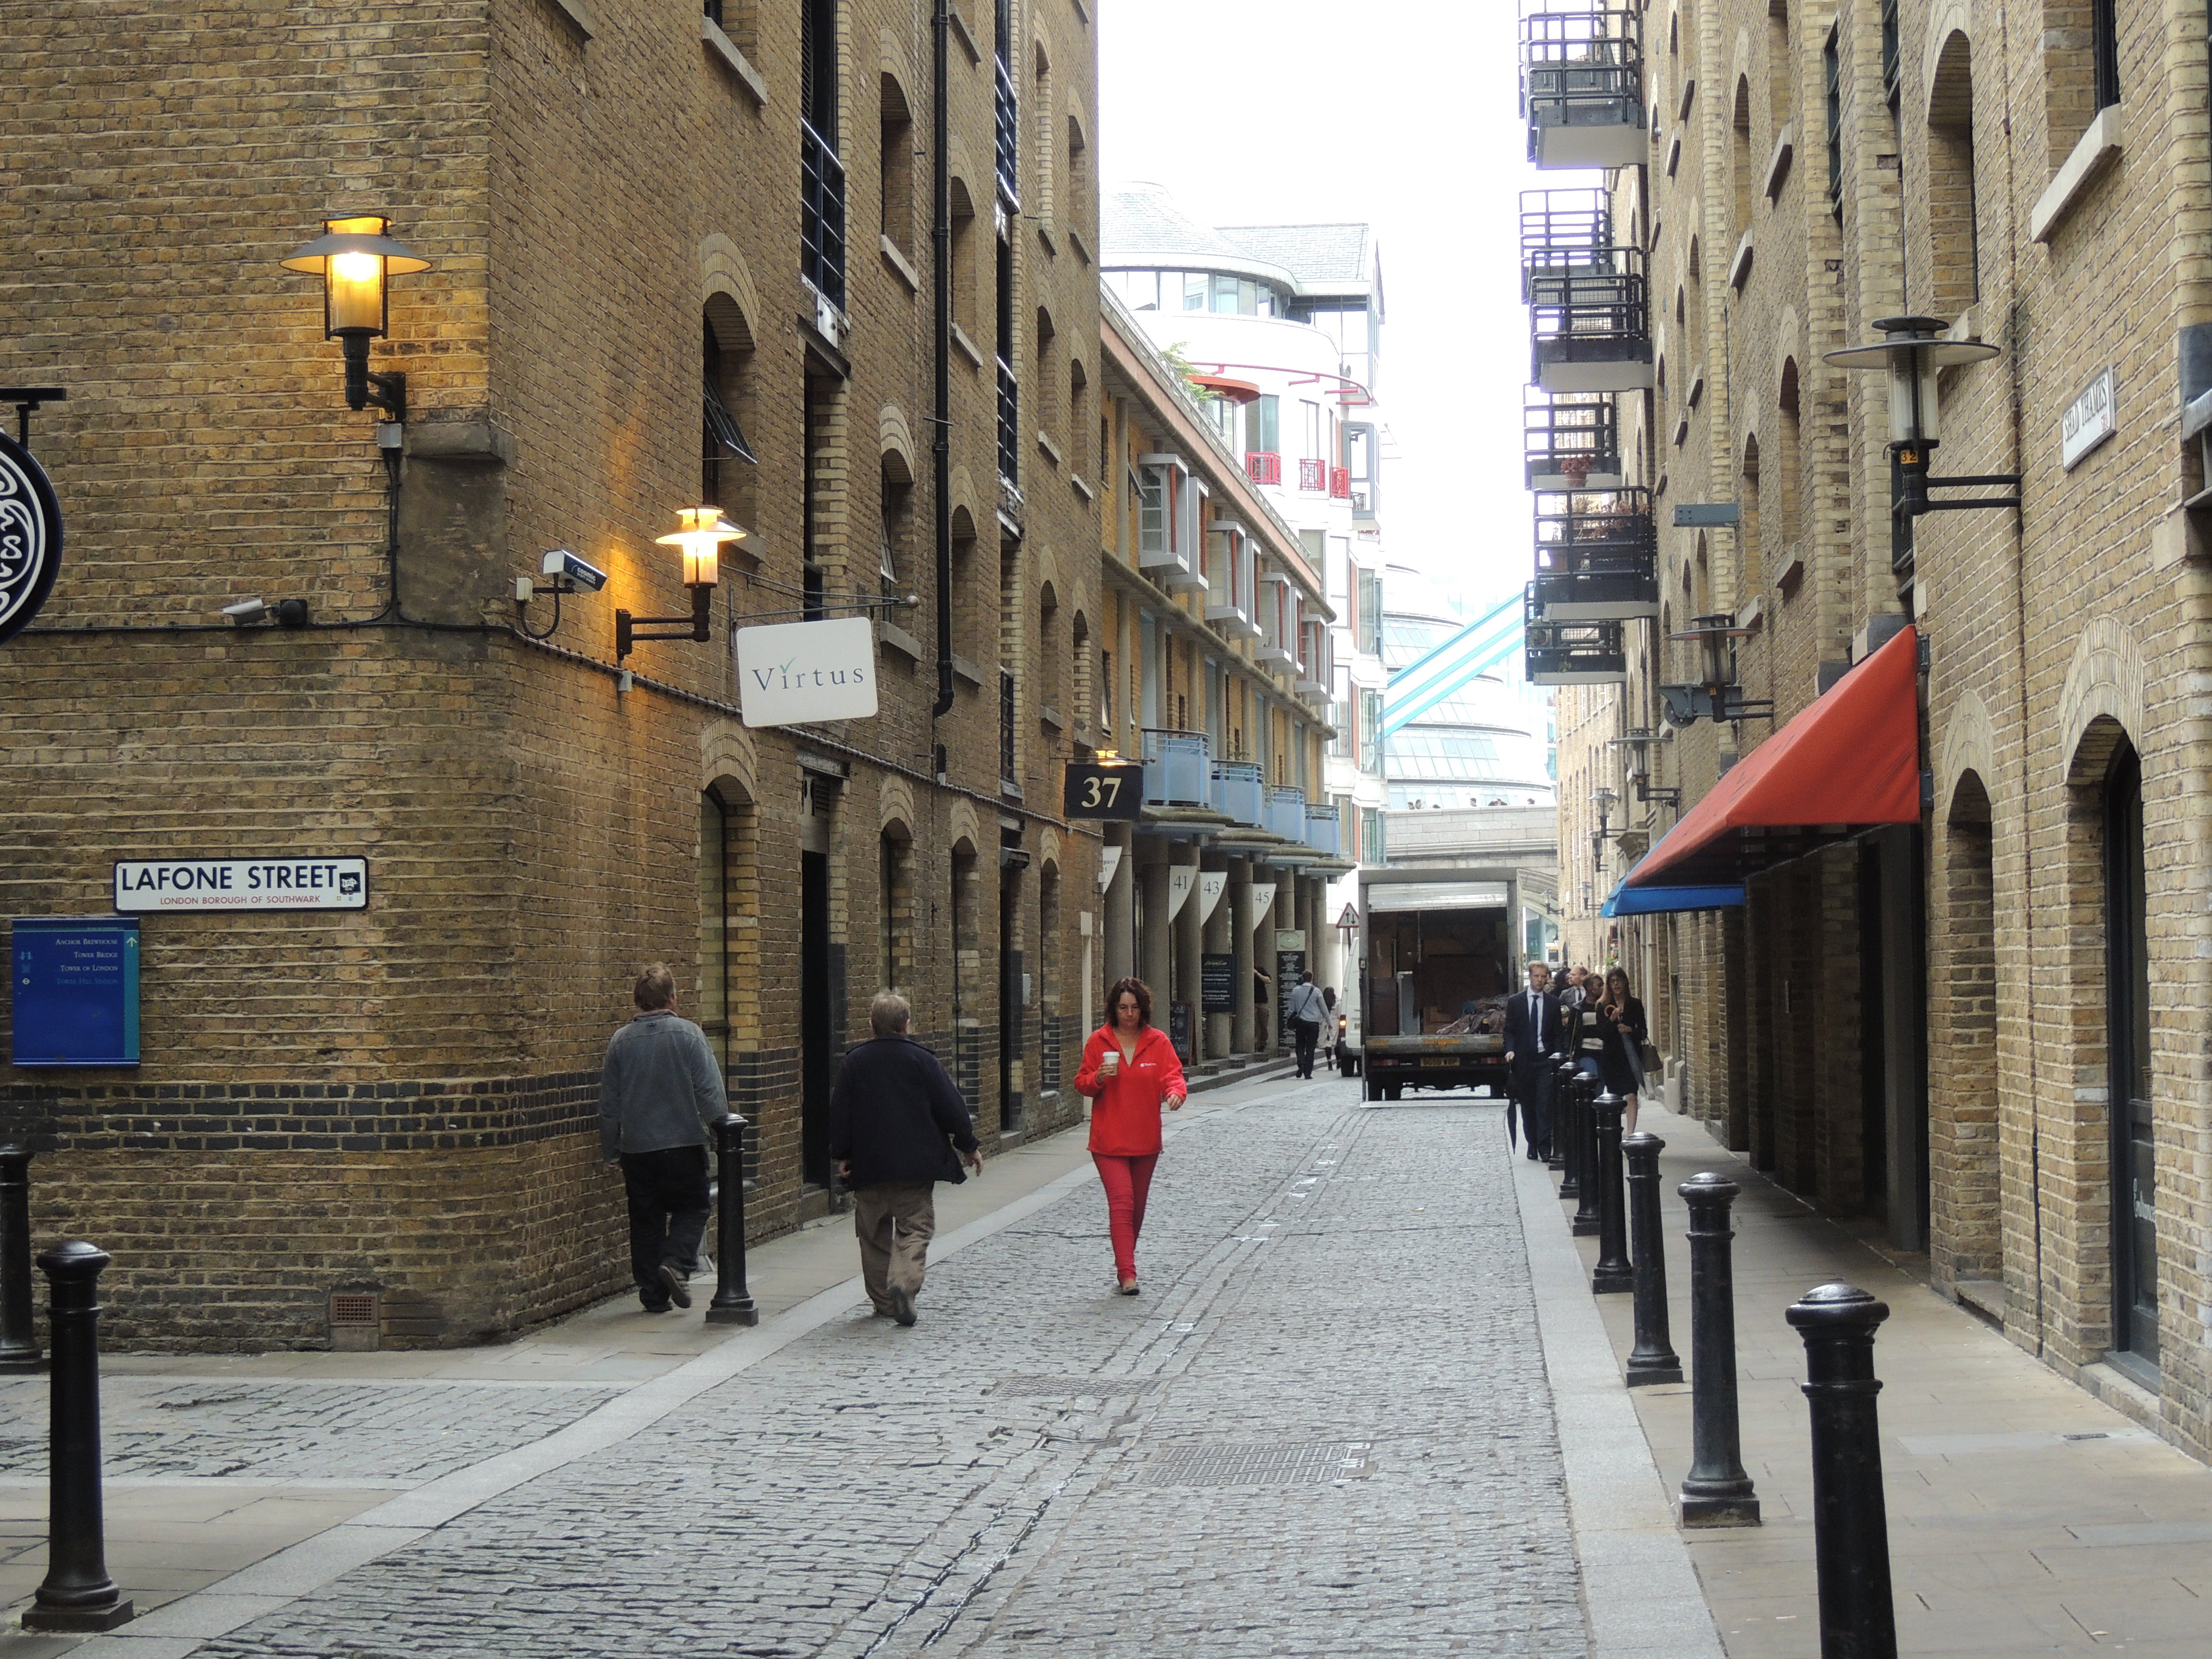 Shad thames inandaroundlondon shad thames is an enclave of quaint cobbled streets and trendy warehouse apartment blocks which sit at the foot of tower bridge malvernweather Images